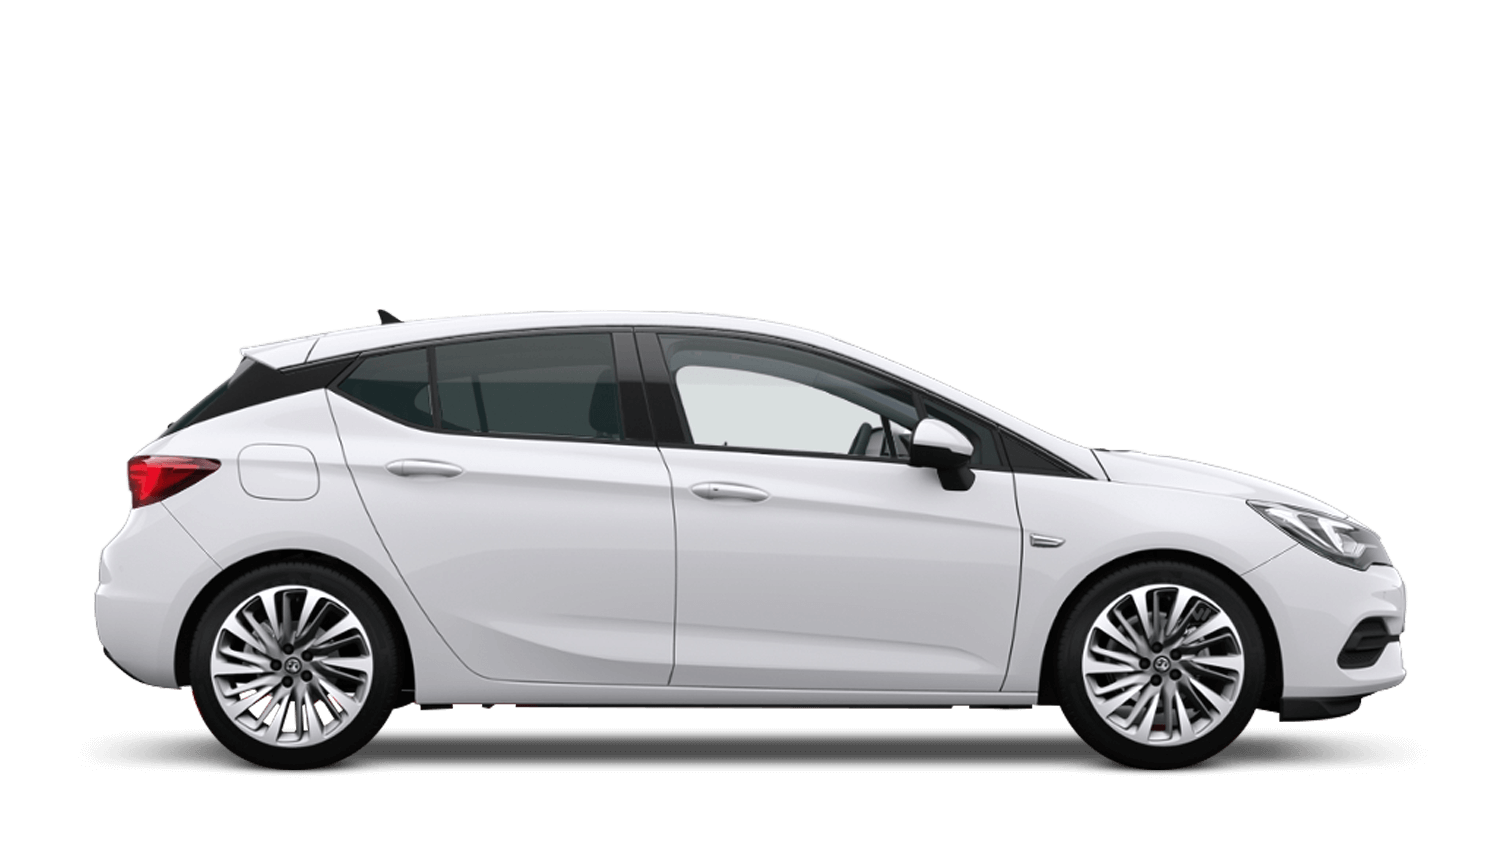 Summit White (Brilliant) Vauxhall Astra